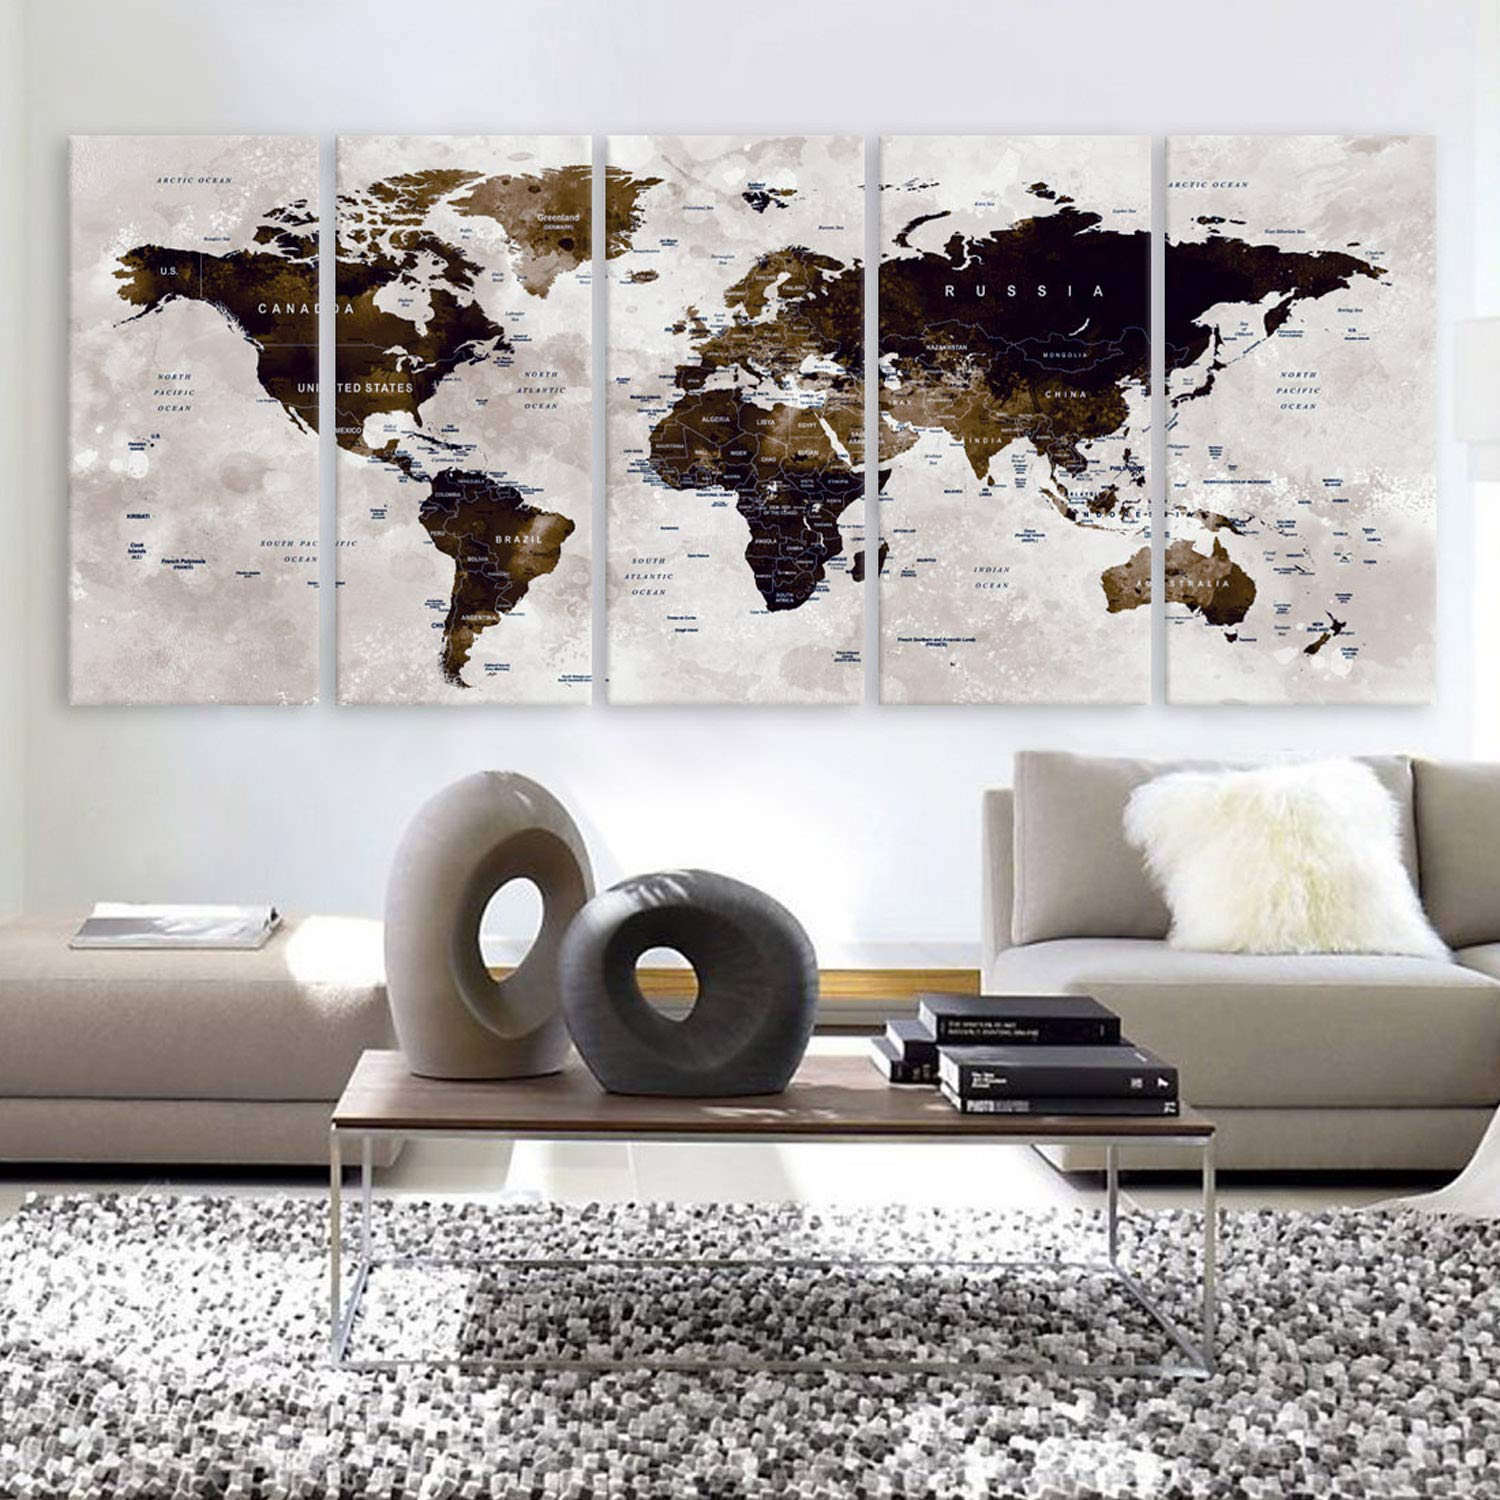 """Original by BoxColors XLARGE 30""""x 70"""" 5 Panels 30""""x14"""" Ea Art Canvas Print Watercolor Map World Countries Cities Push Pin Travel Wall color Brown beige decor Home interior (framed 1.5"""" depth)"""